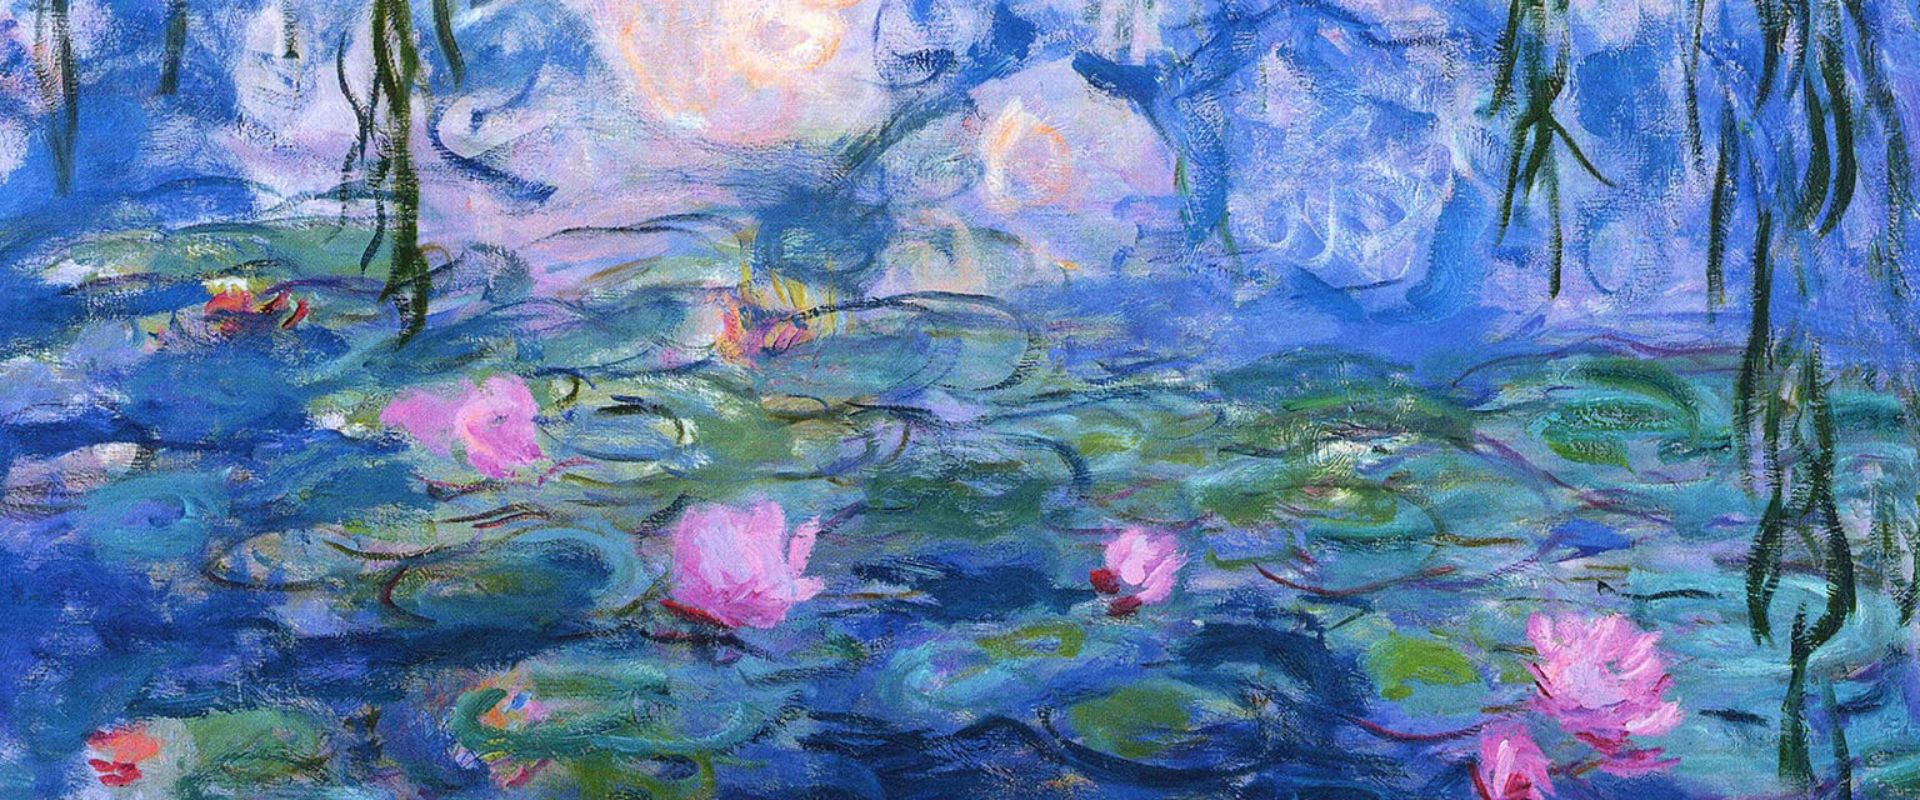 Claude Monet Artworks Collection | Buy Posters, Frames, Canvas, Digital Art & Large Size Prints Of The Famous Old Master's Artworks